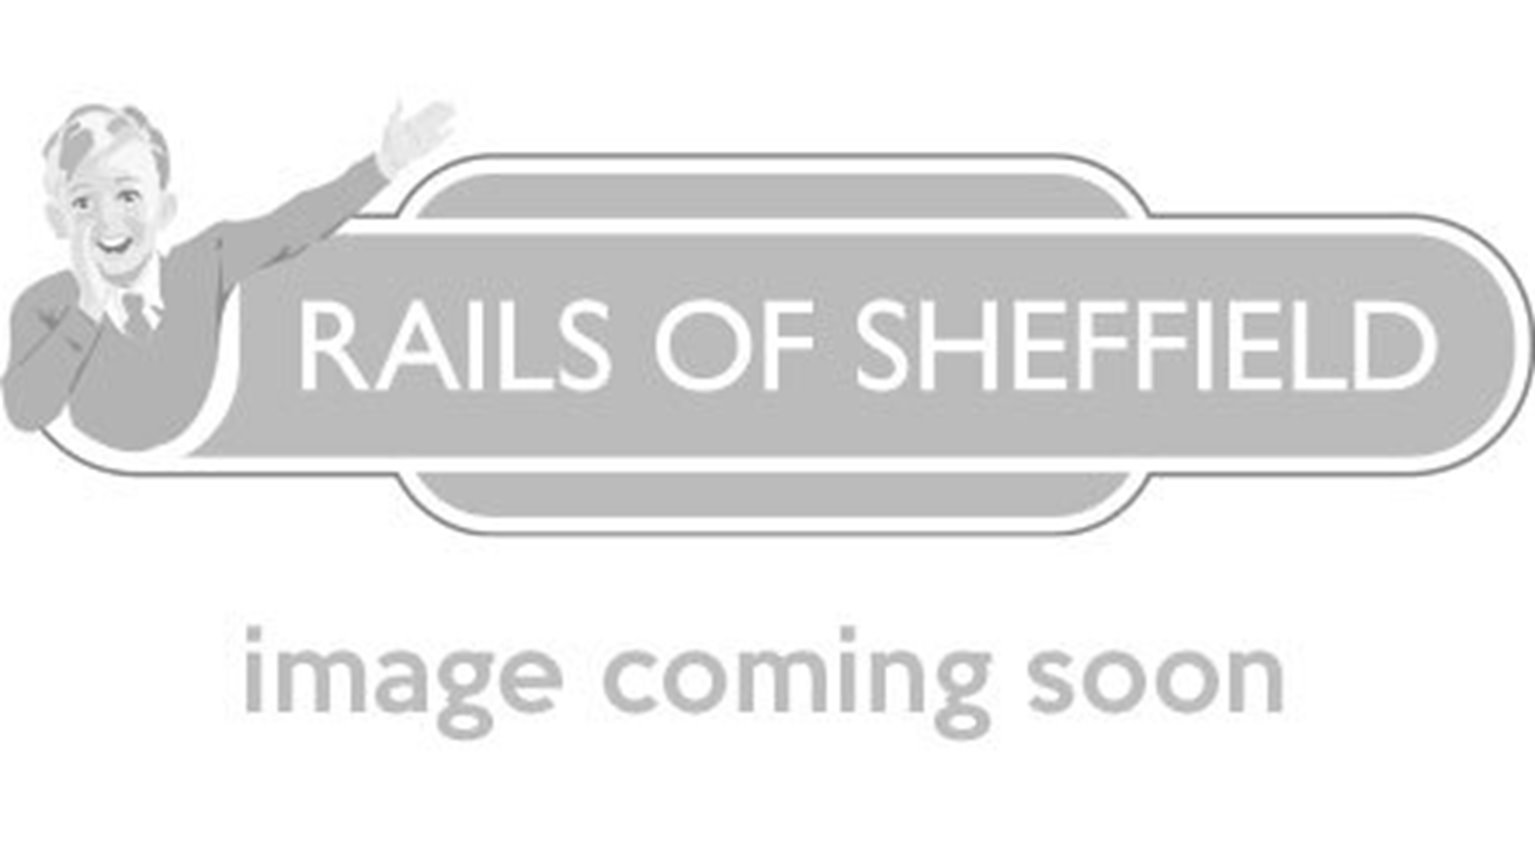 Kato 24-829 DC/AC Converter for use with Kato Controller